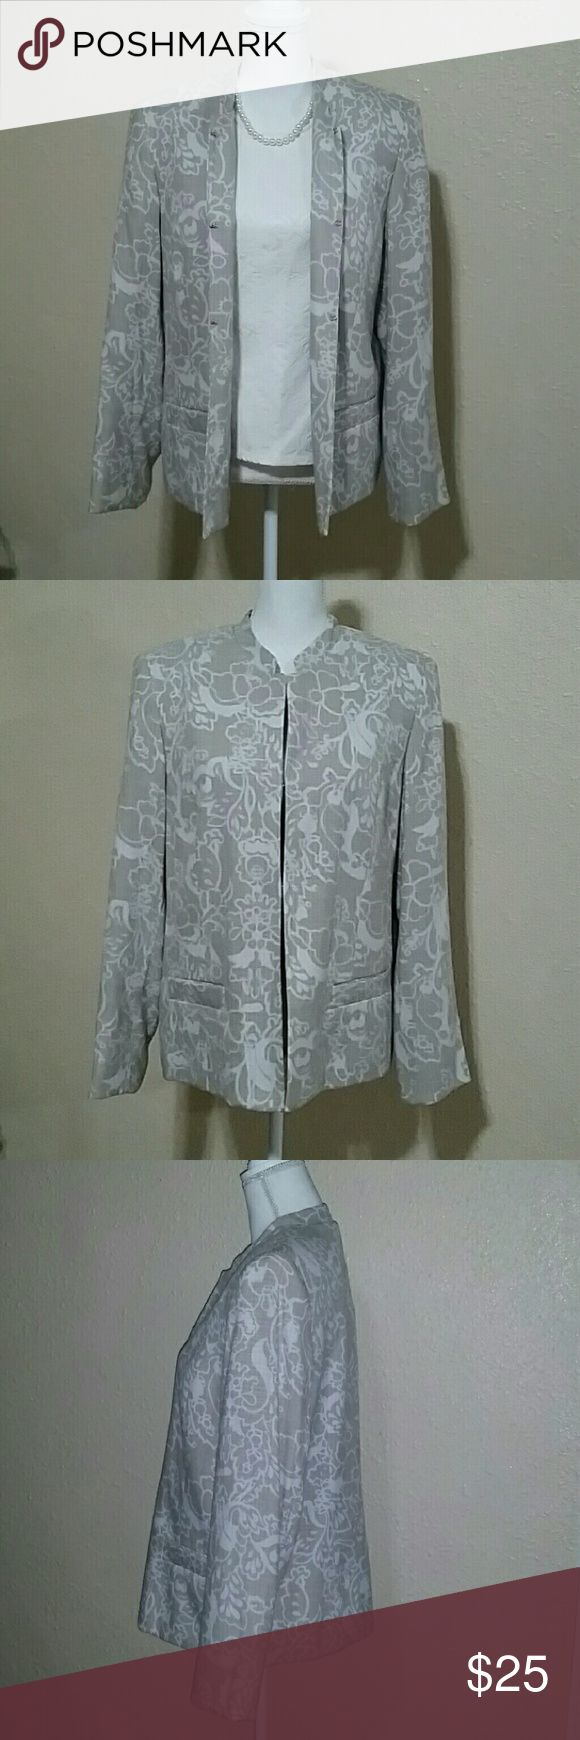 """Karen Scott Jacket Gorgeous floral jacket in white & tan color with hook closure. Outseam 24-7/8"""" sleeve approx  24-1/2""""      Pit-to-Pit approx 21"""". In great condition. Karen Scott Jackets & Coats"""